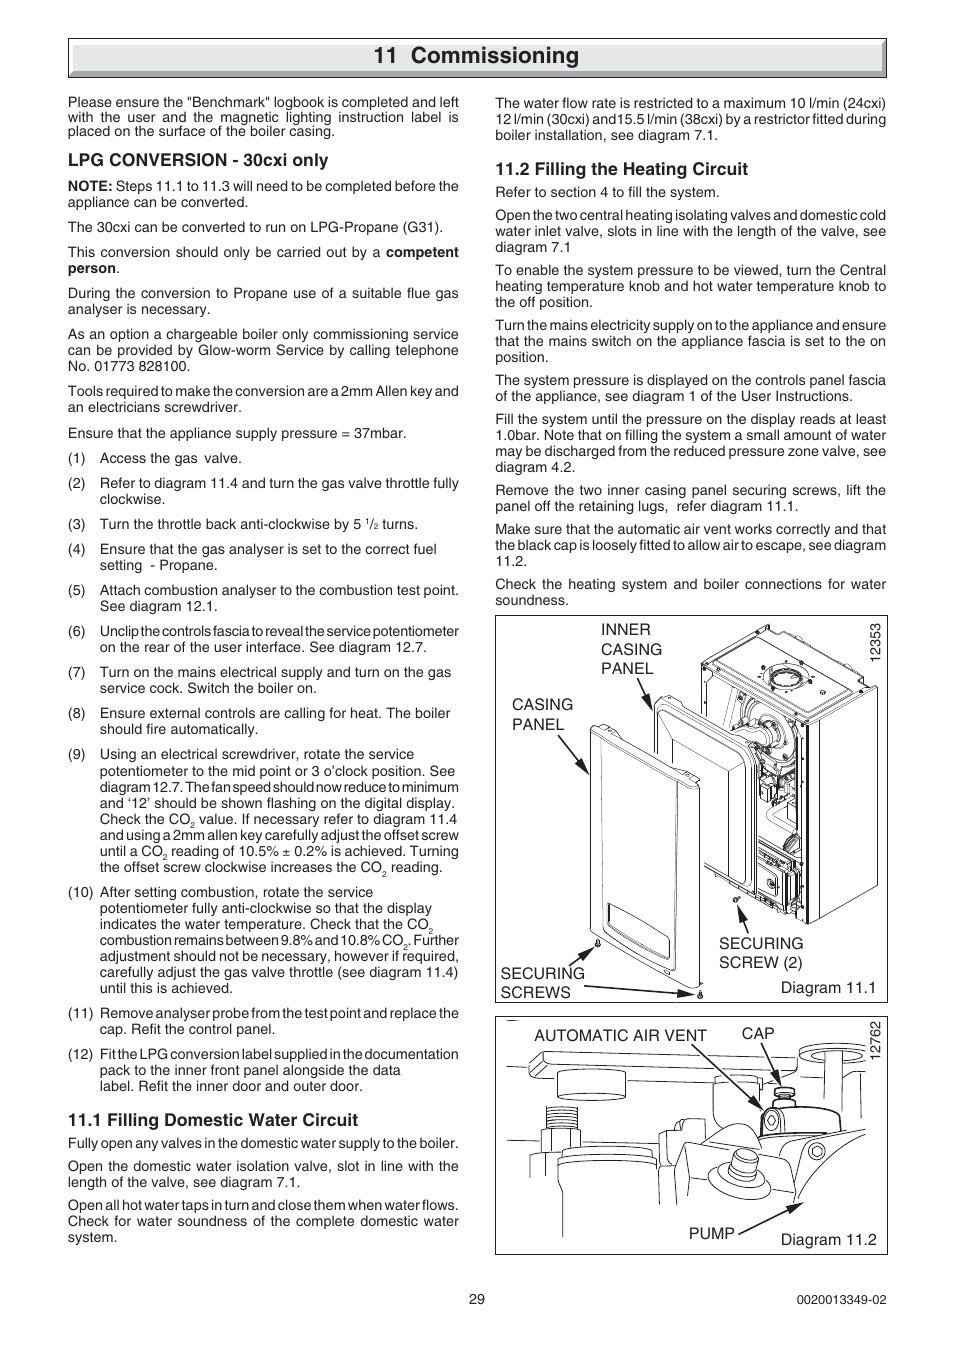 11 commissioning | Glow-worm cxi and Gas Valve User Manual | Page 29 ...